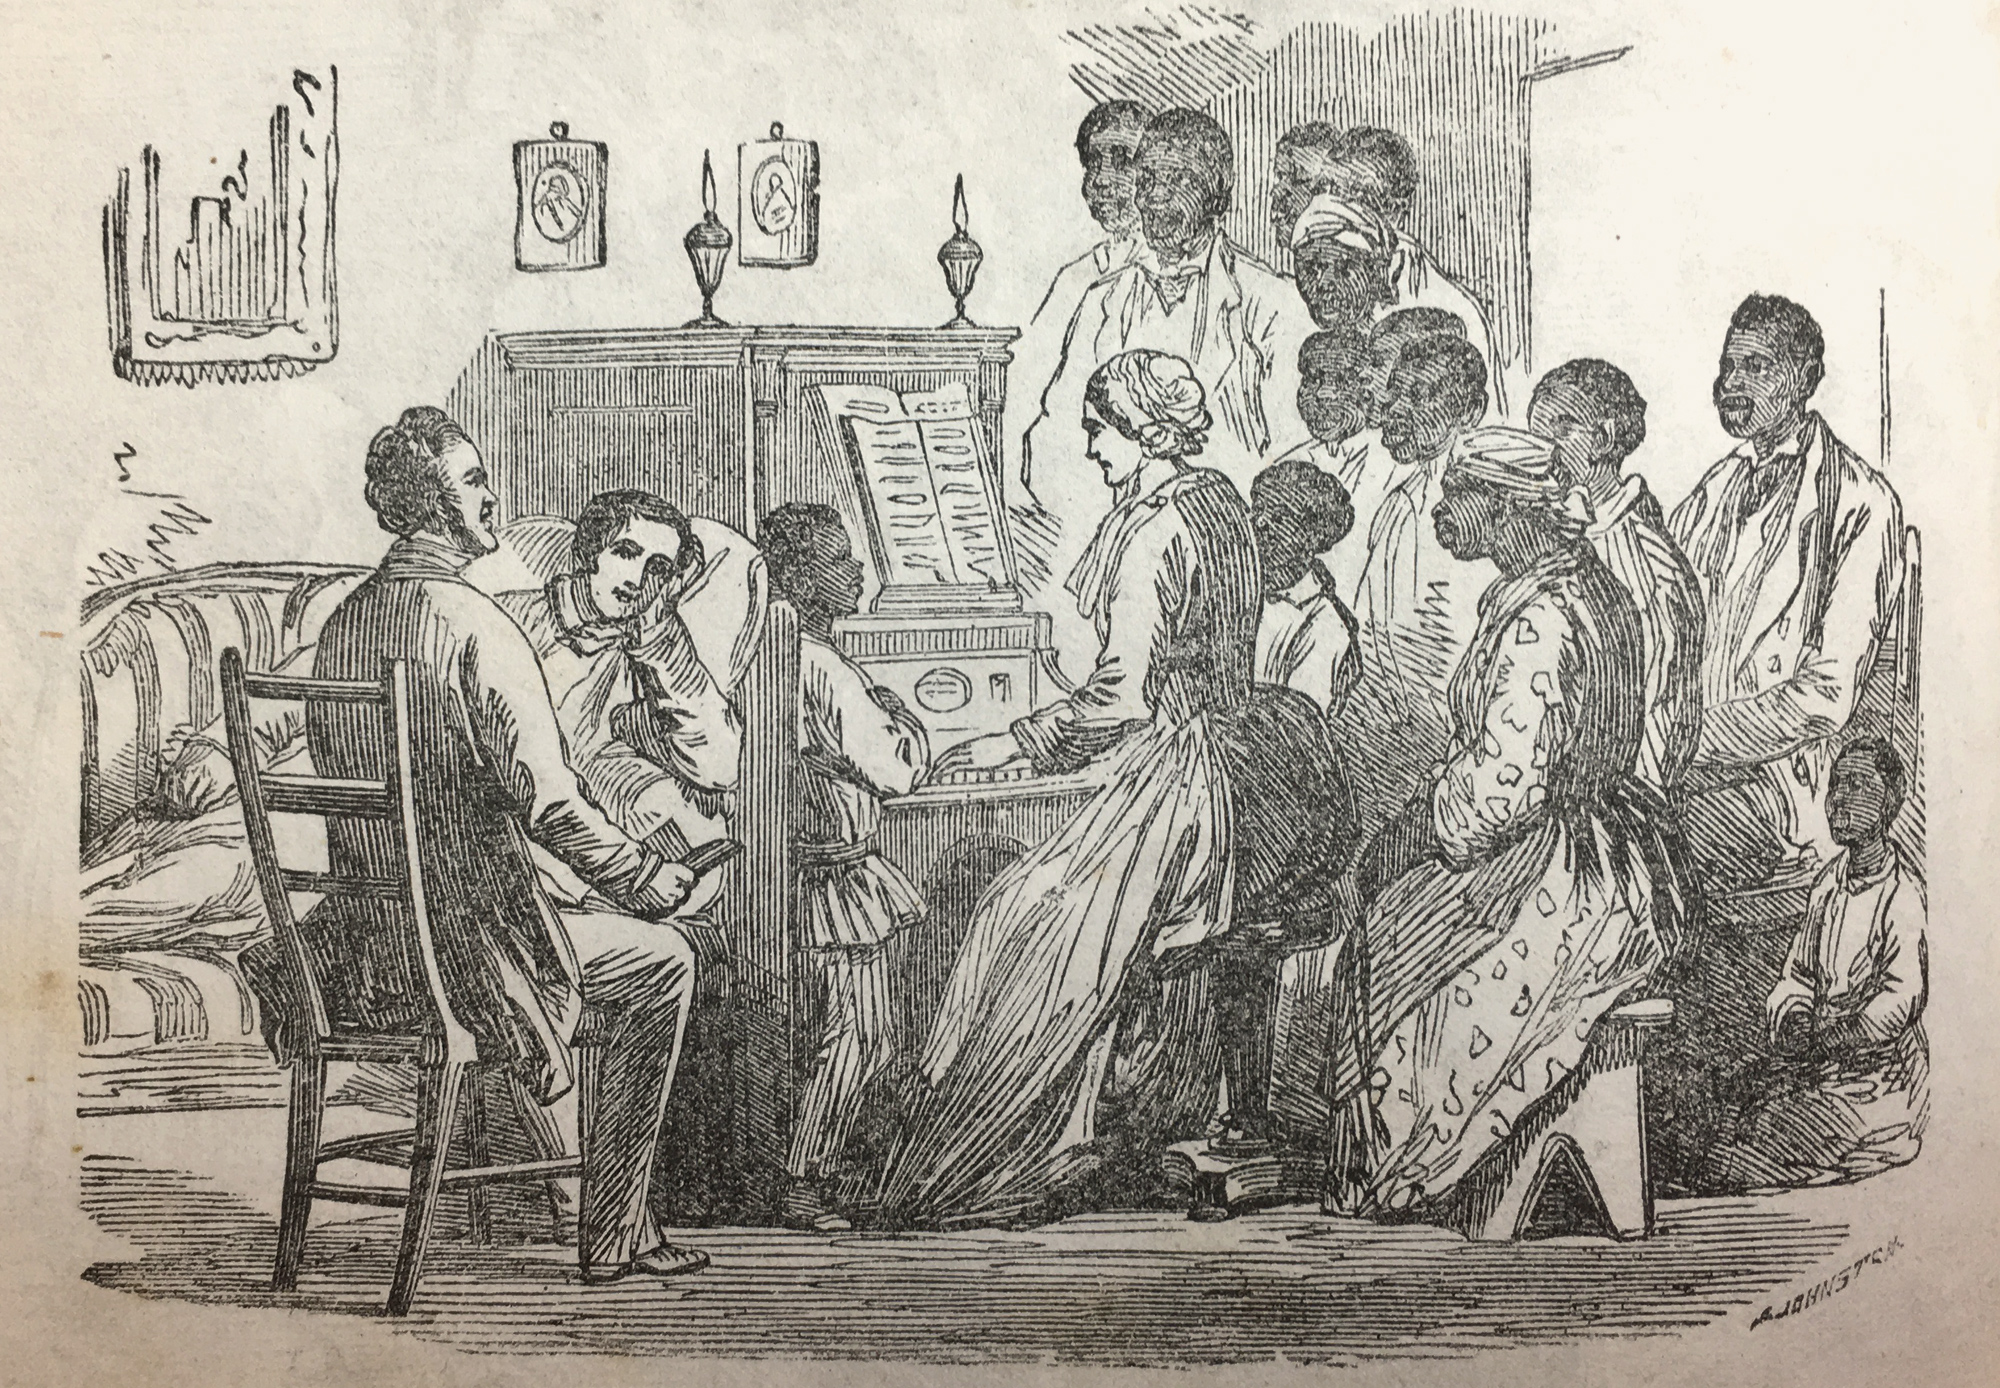 Musical education by European women in the missionaries introduced new European aesthetics, like changes in harmonies and melodies.